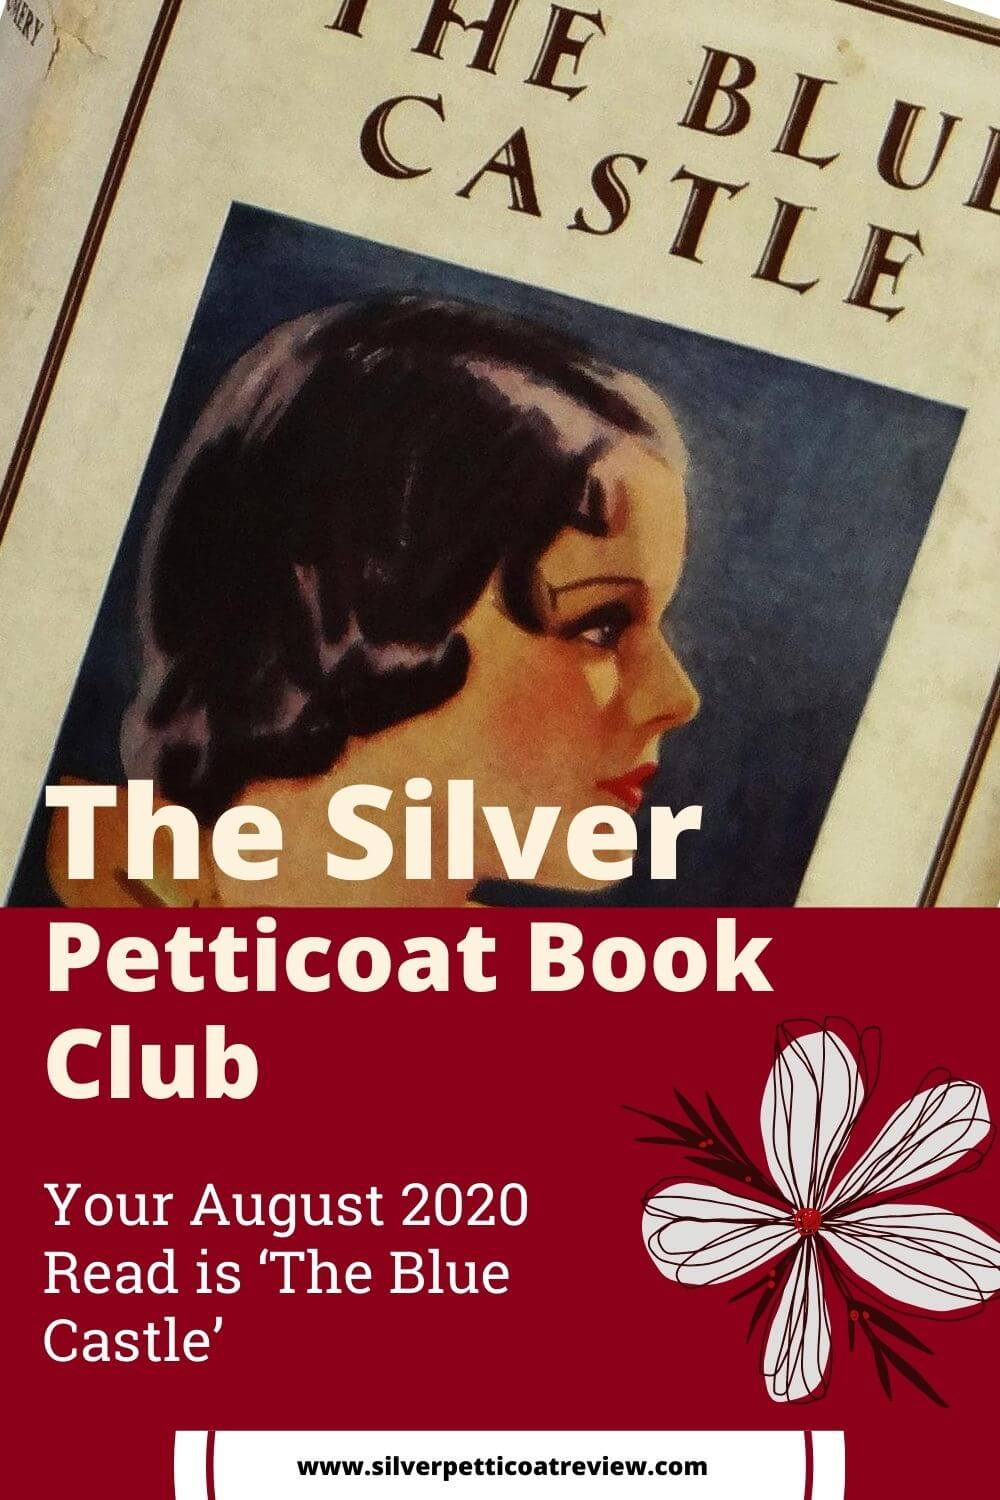 The Silver Petticoat Book Club: Your August 2020 Read is The Blue Castle  - Pinterest image